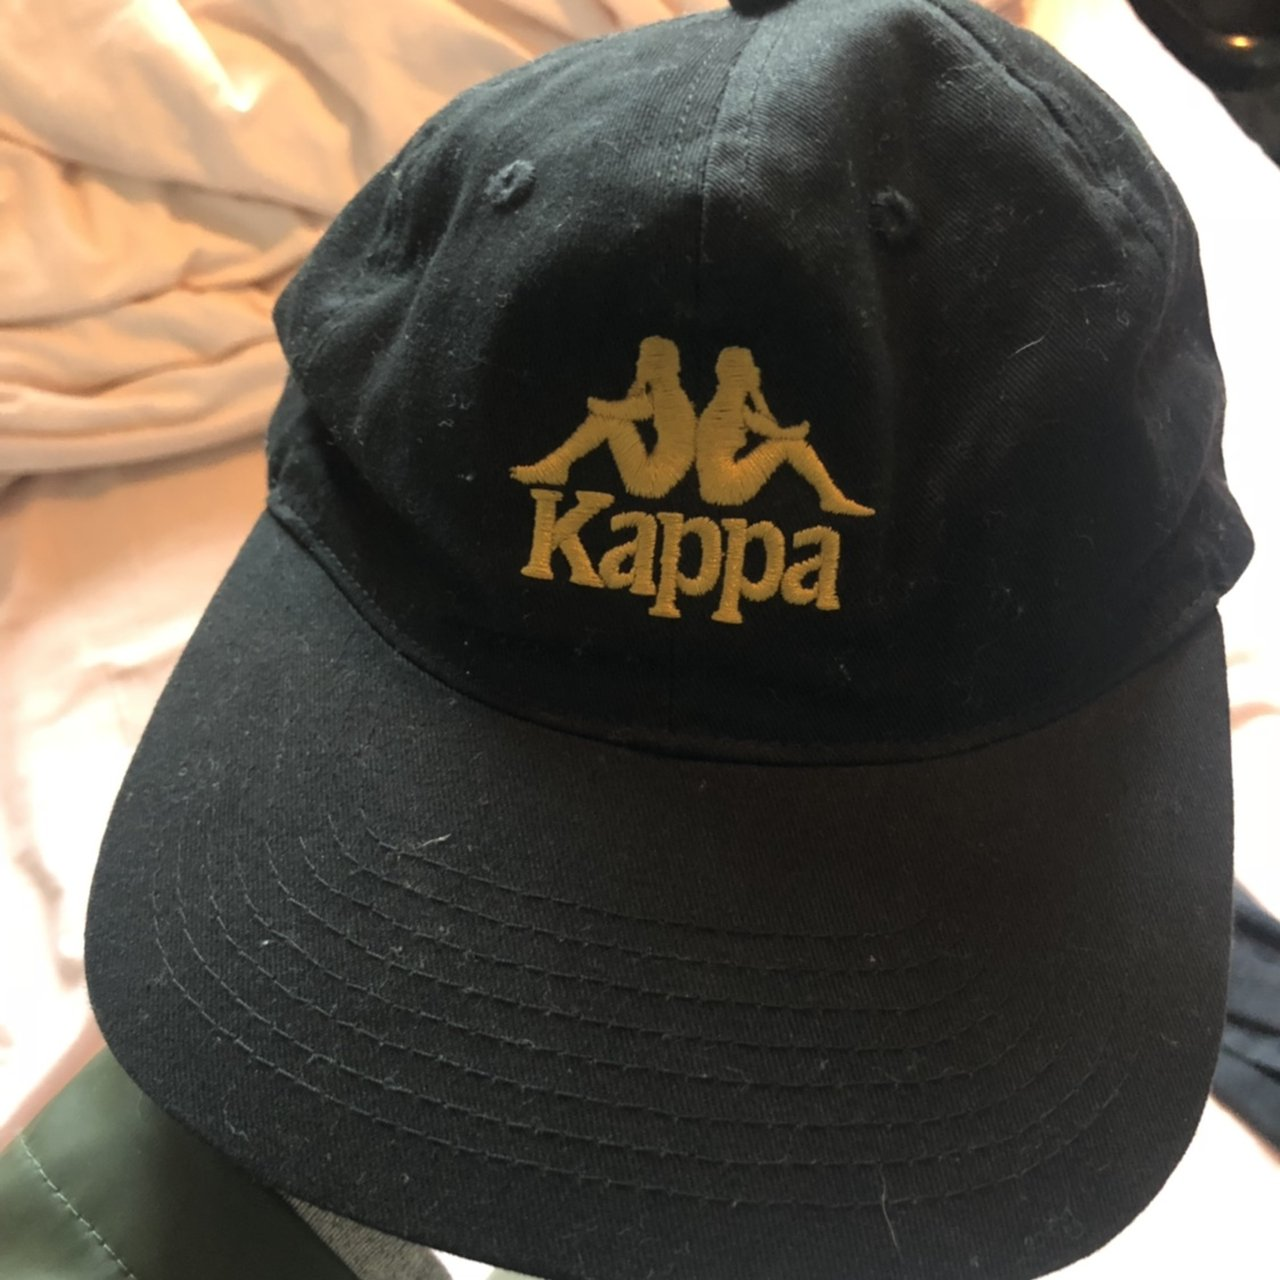 8b18a109667 Kappa cap hat Purchased in Florida 2017